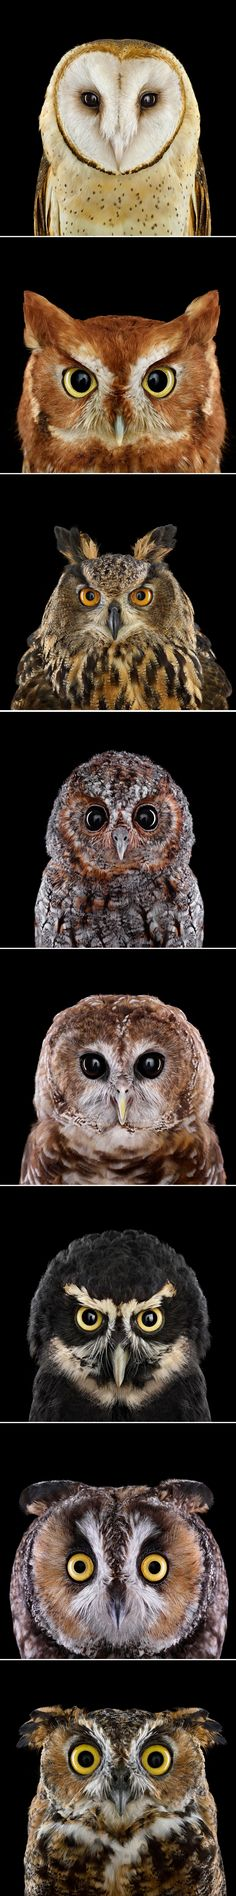 Who's Who: These owls may wear the same game face, but when it comes to personality, they're as different as day and night.